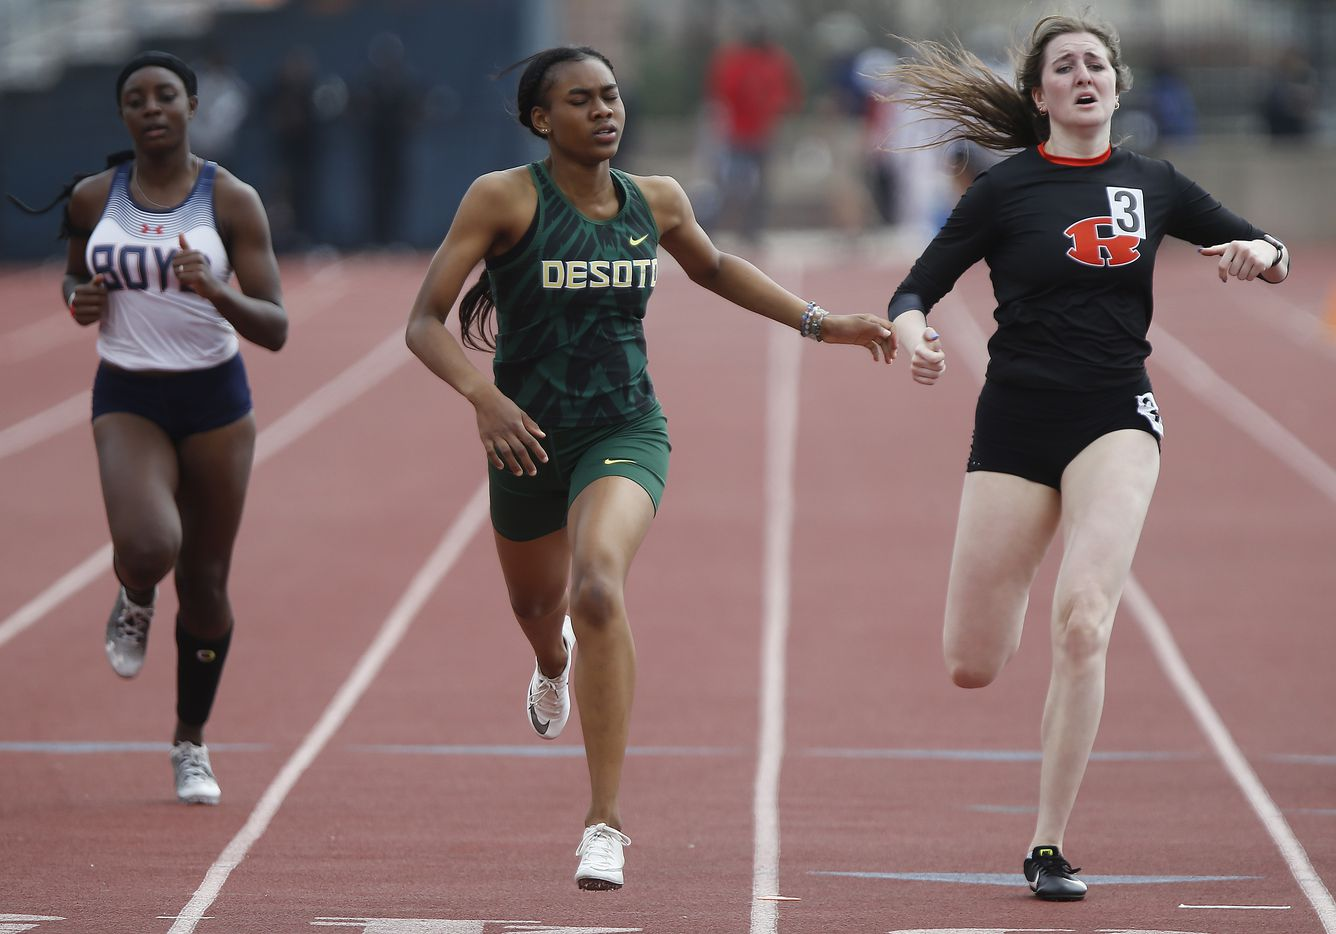 Amelliah Bireow (center), finished first in her heat for DeSotto High School during the Jesuit-Sheaner Relays held at Jesuit College Preparatory School in Dallas on Saturday, March 27, 2021.  (Stewart F. House/Special Contributor)